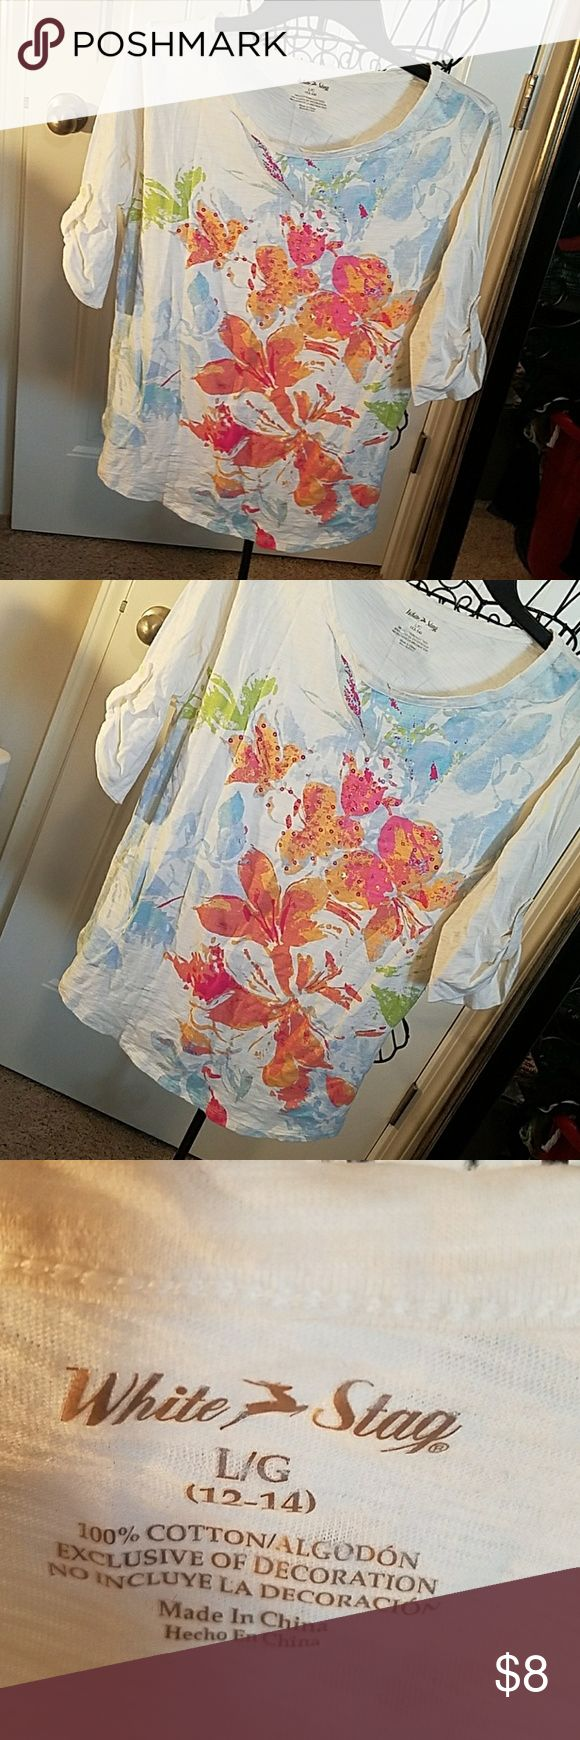 Floral White Stag t-shirt size Large 12/14 Floral multipatterned front with roll up sleeves,  in great preloved condition with minimum wear. White Stag Tops Tees - Long Sleeve